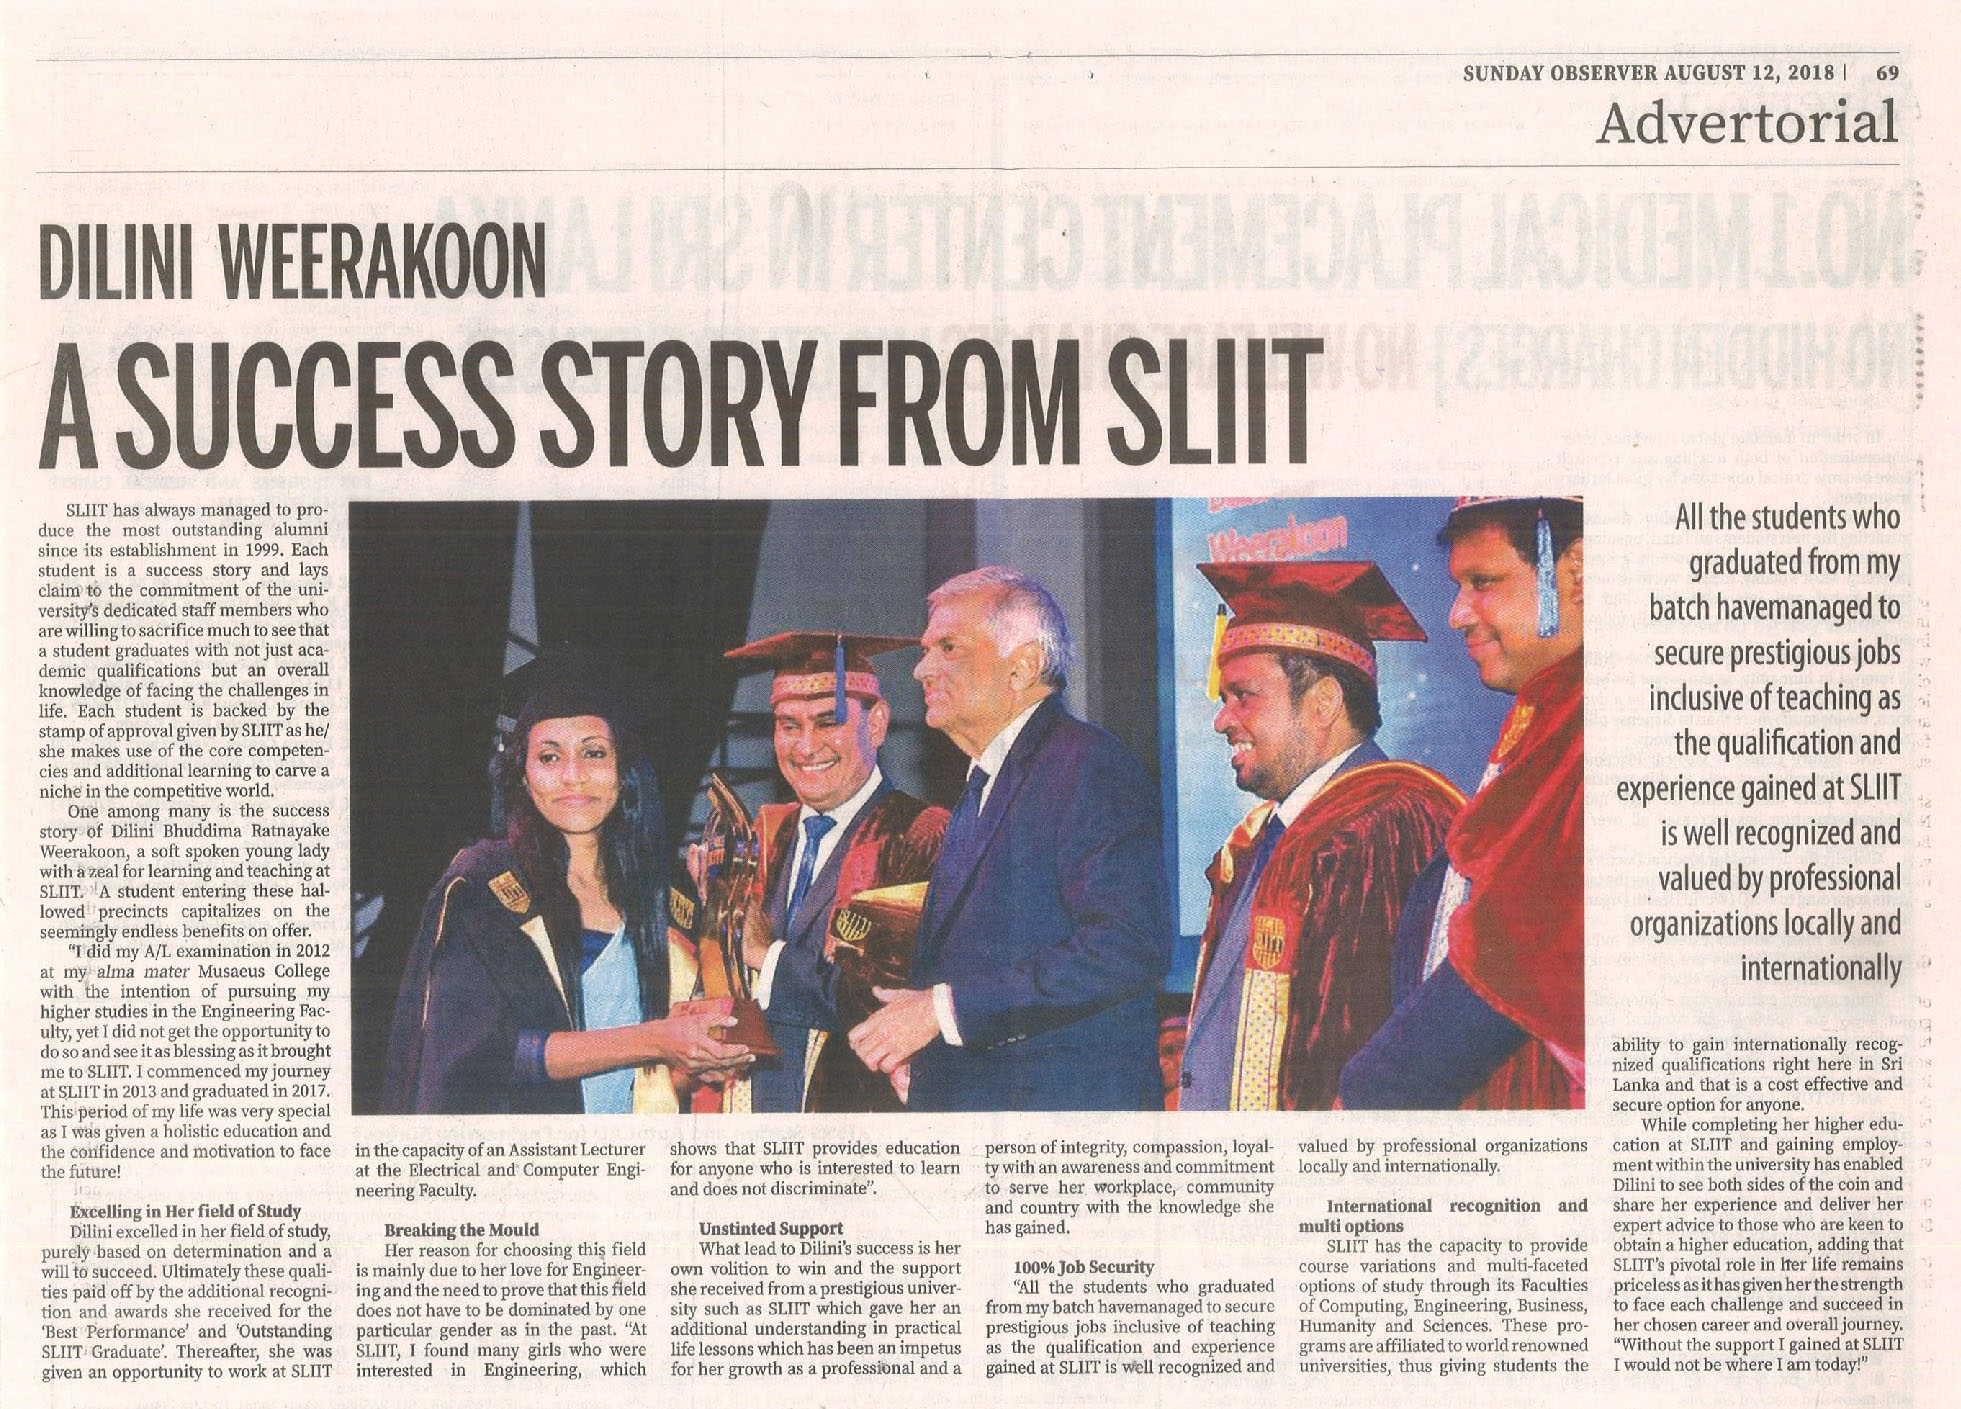 A-Success-Story-from-SLIIT-Dilini-Weerakoon-Sunday-Observer-12.08.2018